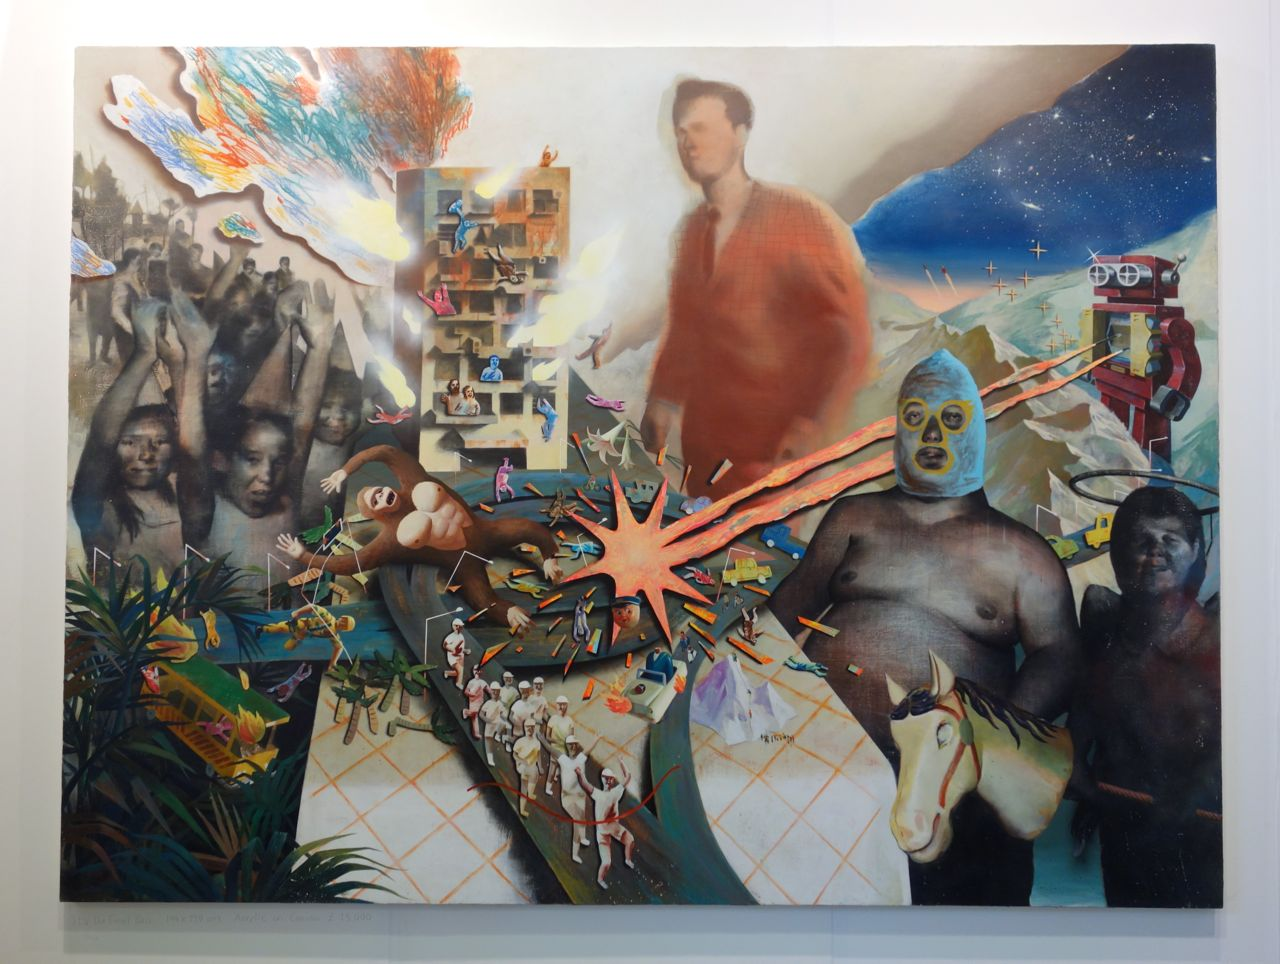 Lai Wei-Yu, 'It's the Final Boss!', 2015, Acrylic on canvas, 194 x 259 cm, Yiri Arts (Taiwan)